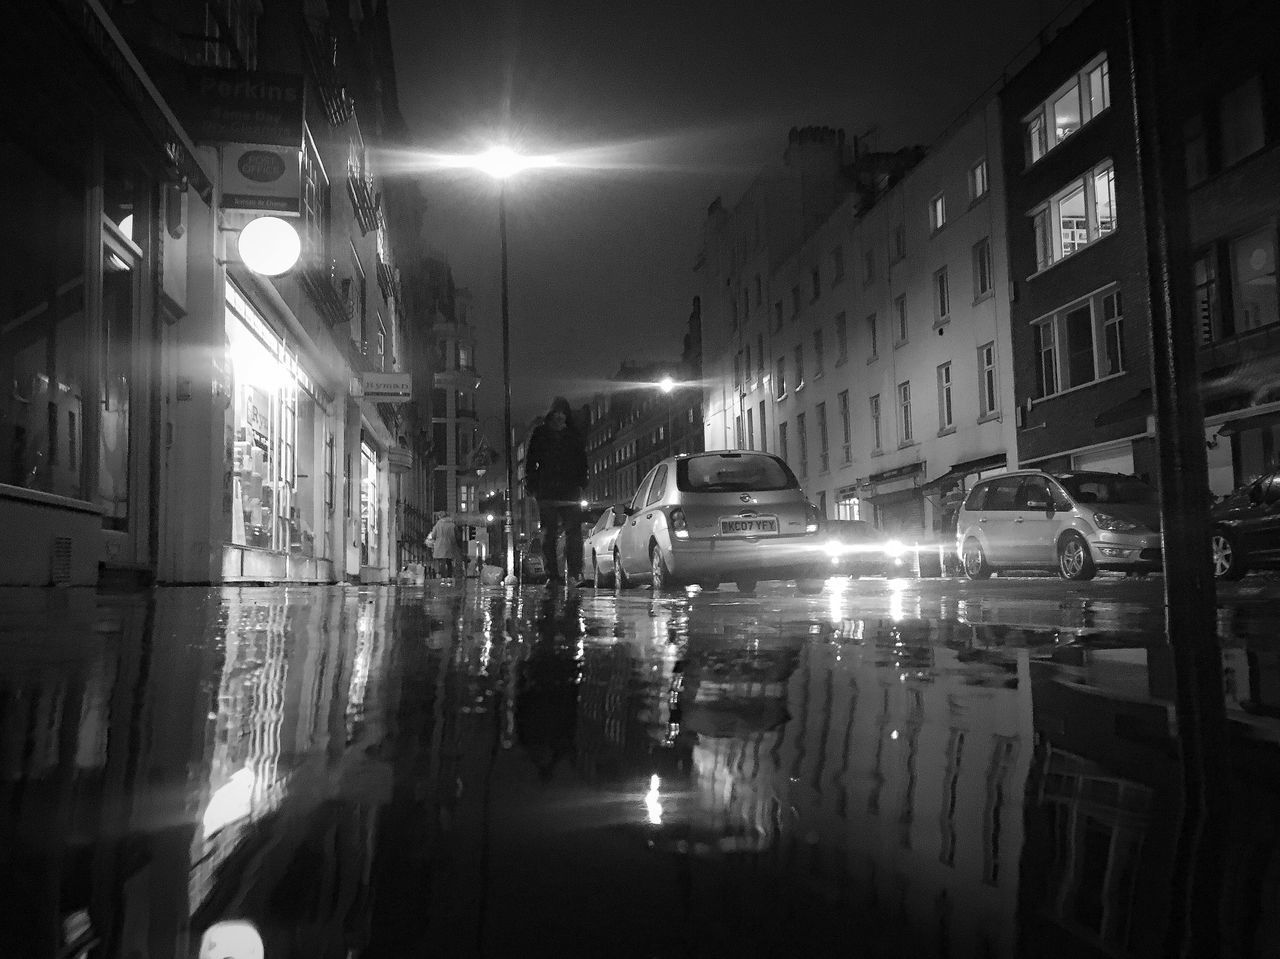 illuminated, night, building exterior, architecture, street, street light, built structure, outdoors, road, no people, city, light beam, water, puddle, sky